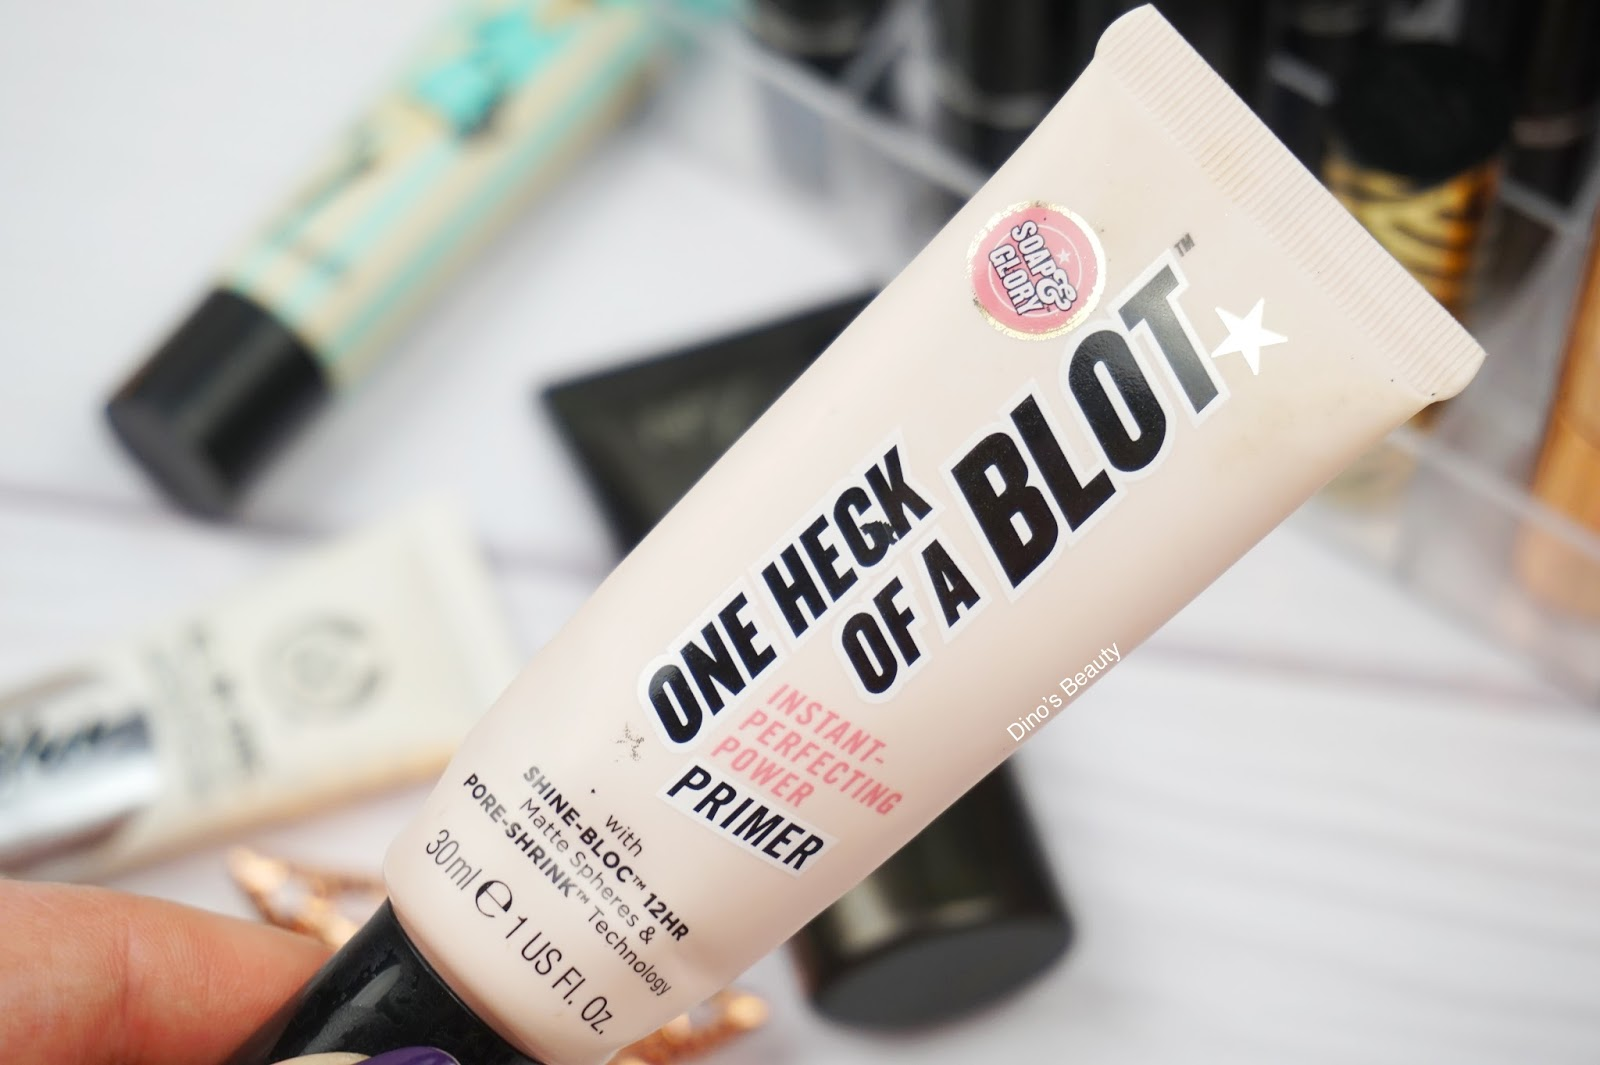 bbloggers, beauty, beauty bloggers, beauty review, Clinique, Superprimer, The Body Shop, Instablur, Soap and Glory, One Heck Of A Blot, Benefit, POREfessional, No7, Stay Perfect, primer, makeup primer, base, makeup base